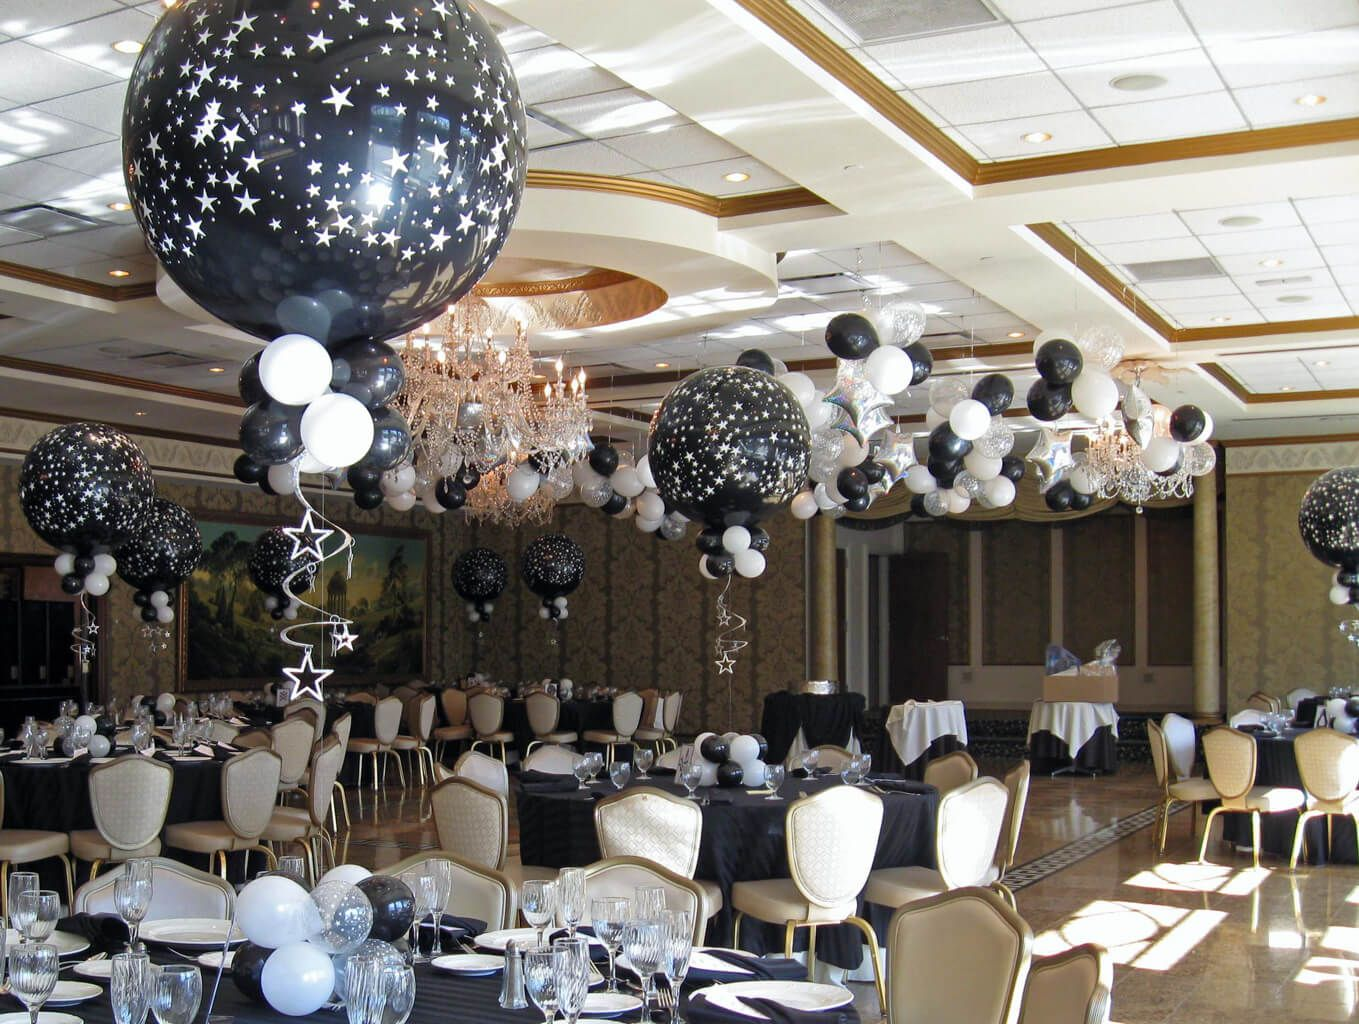 Black & White Star Balloons B&W Star Balloon Centerpieces with Floating Star  Mobiles